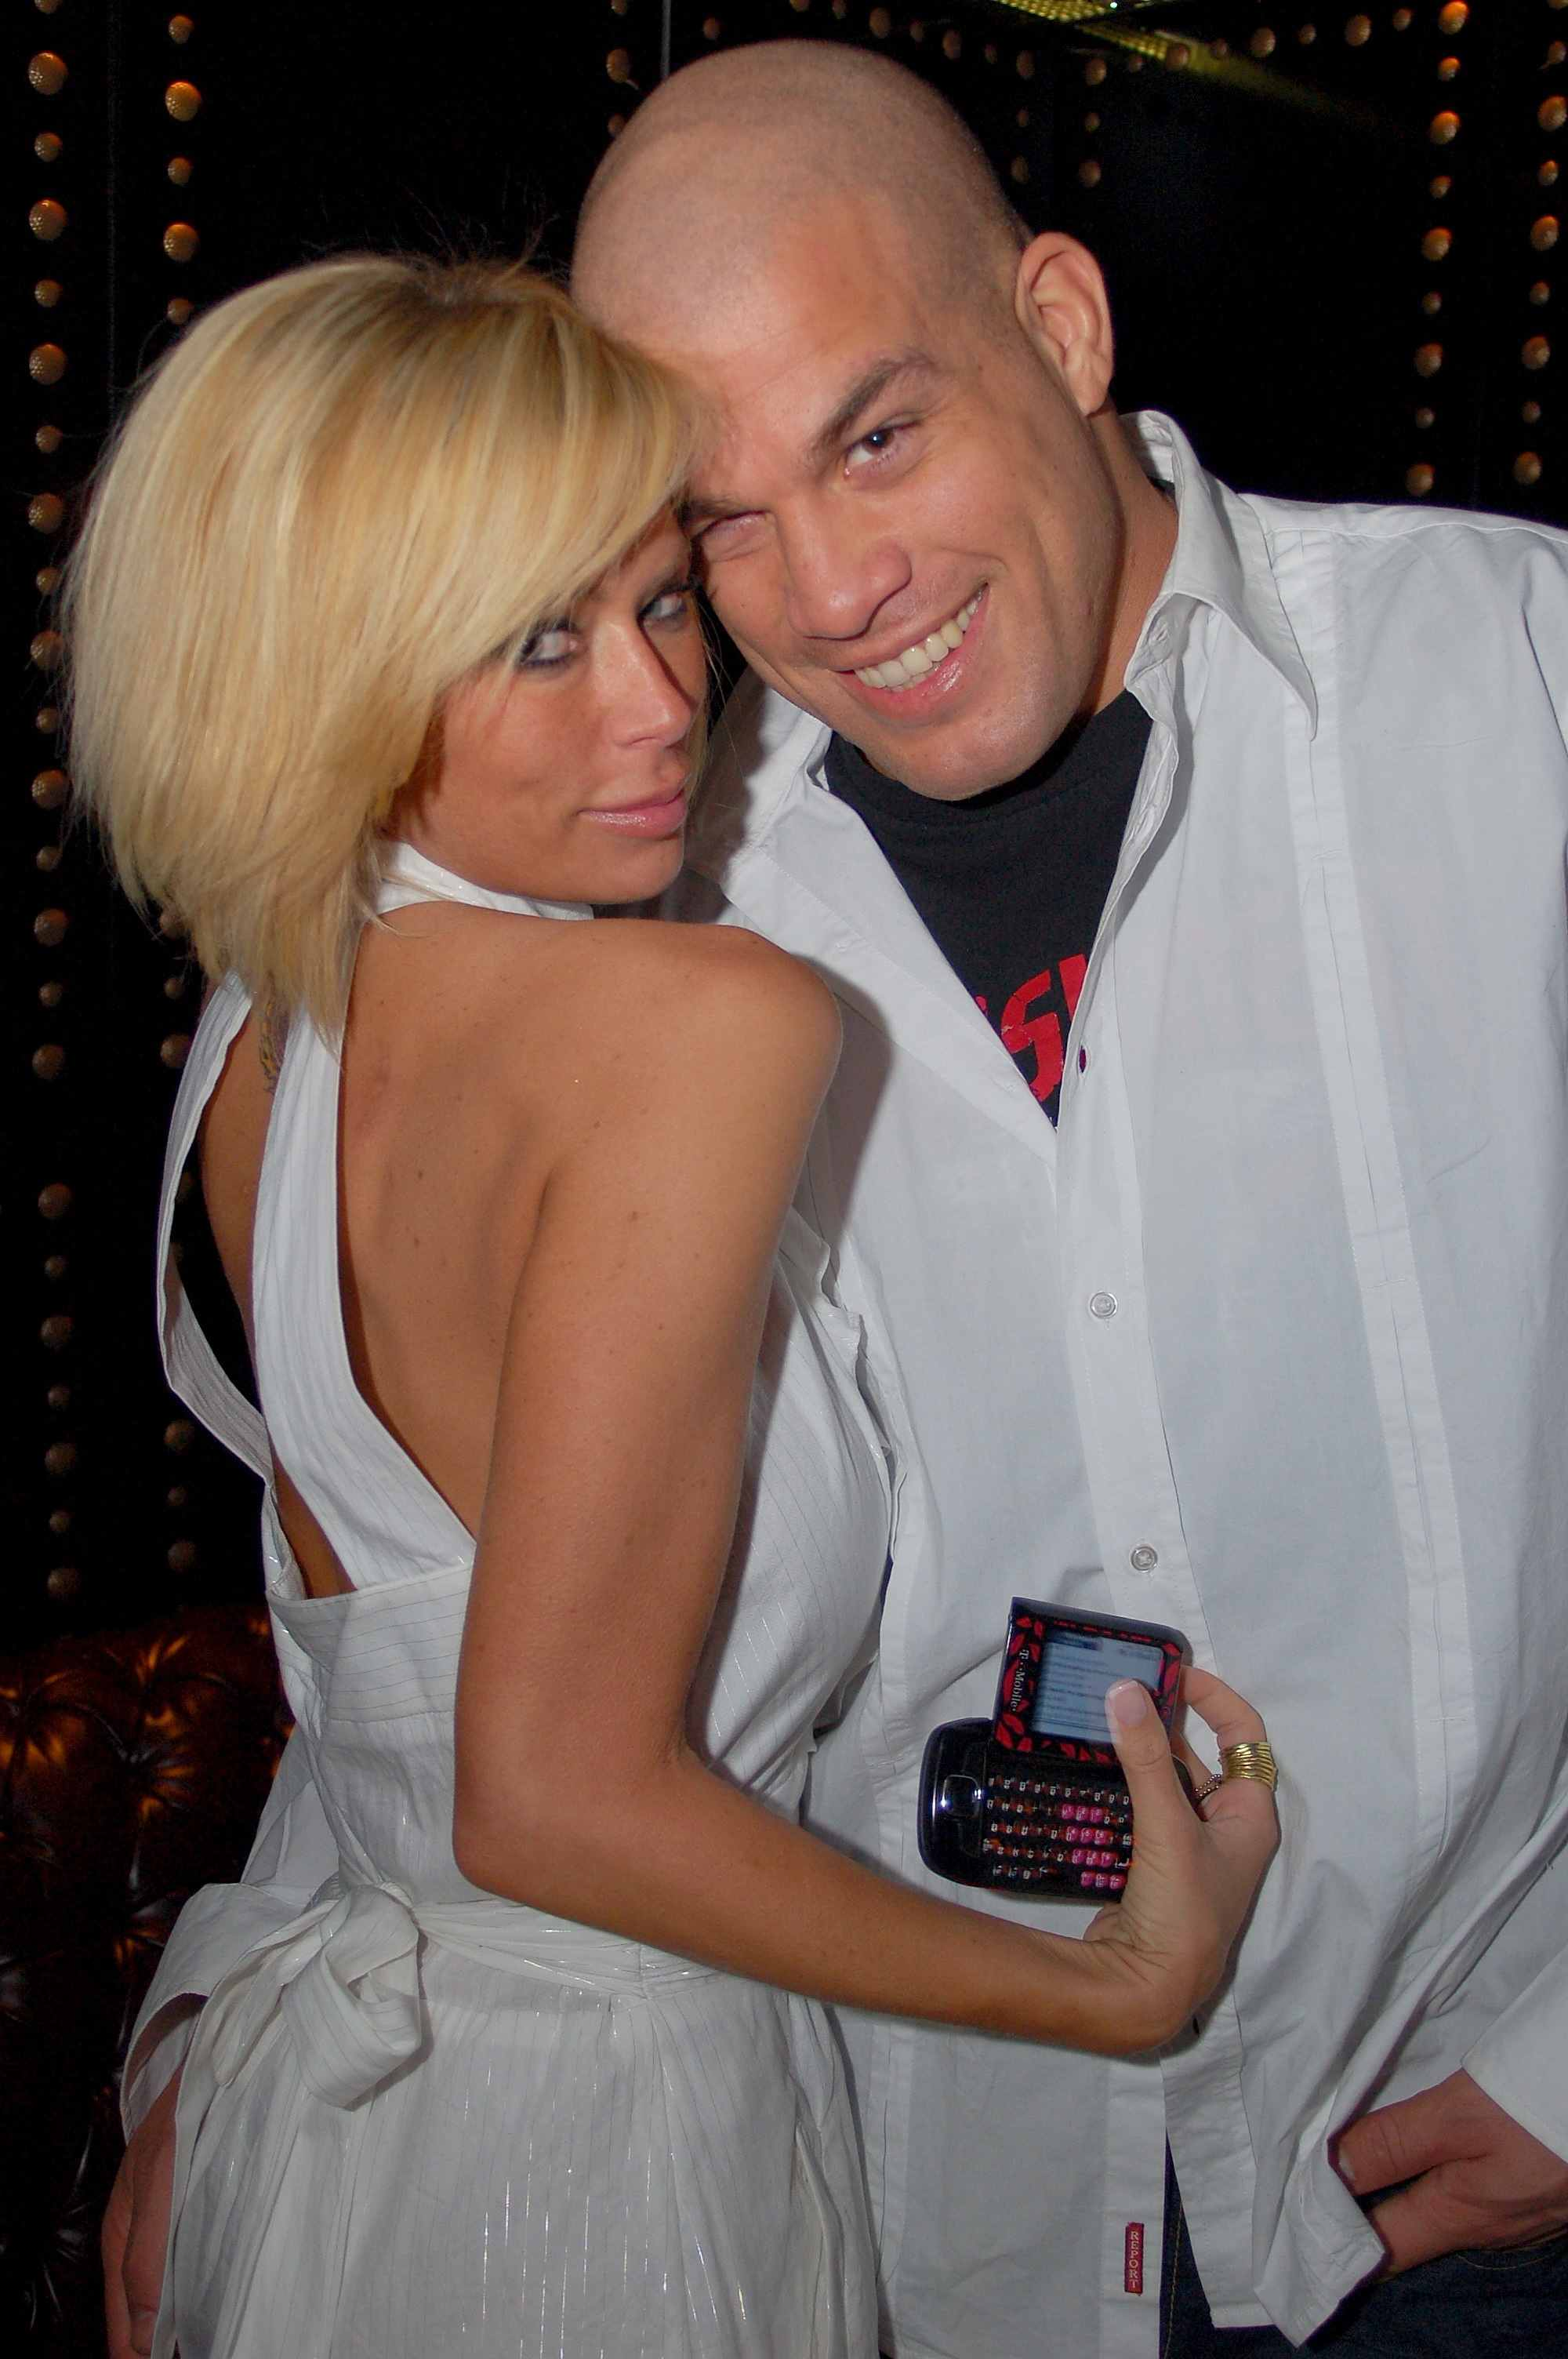 Paparazzi Jenna Jameson naked (48 foto and video), Sexy, Cleavage, Boobs, braless 2006